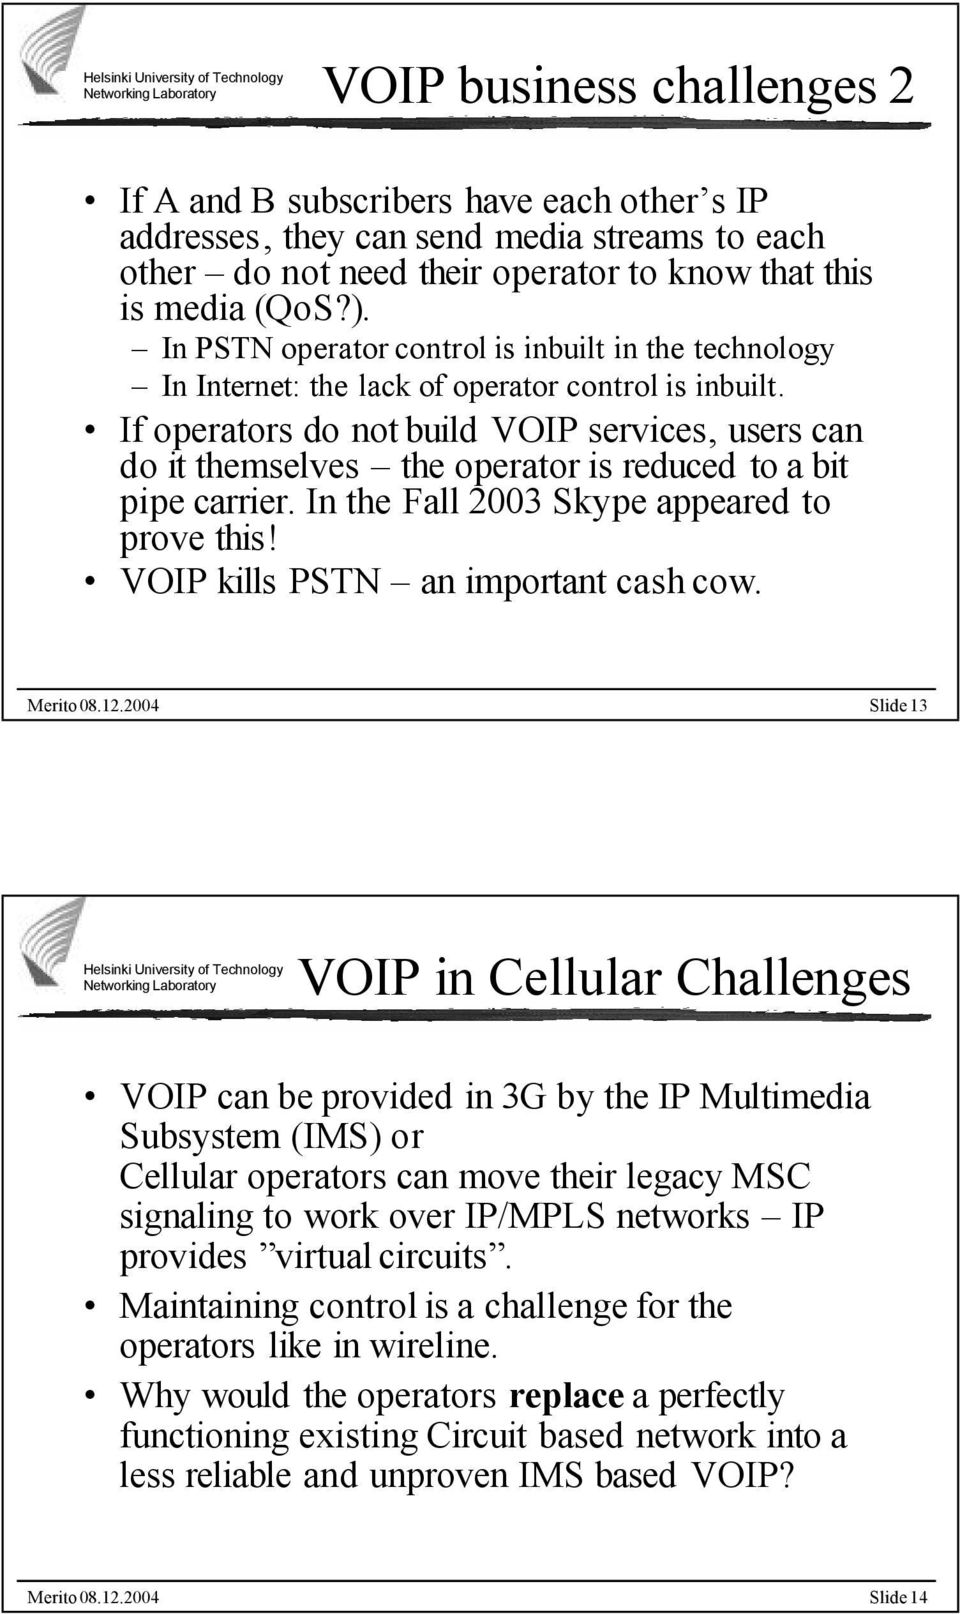 If operators do not build VOIP services, users can do it themselves the operator is reduced to a bit pipe carrier. In the Fall 2003 Skype appeared to prove this! VOIP kills PSTN an important cash cow.